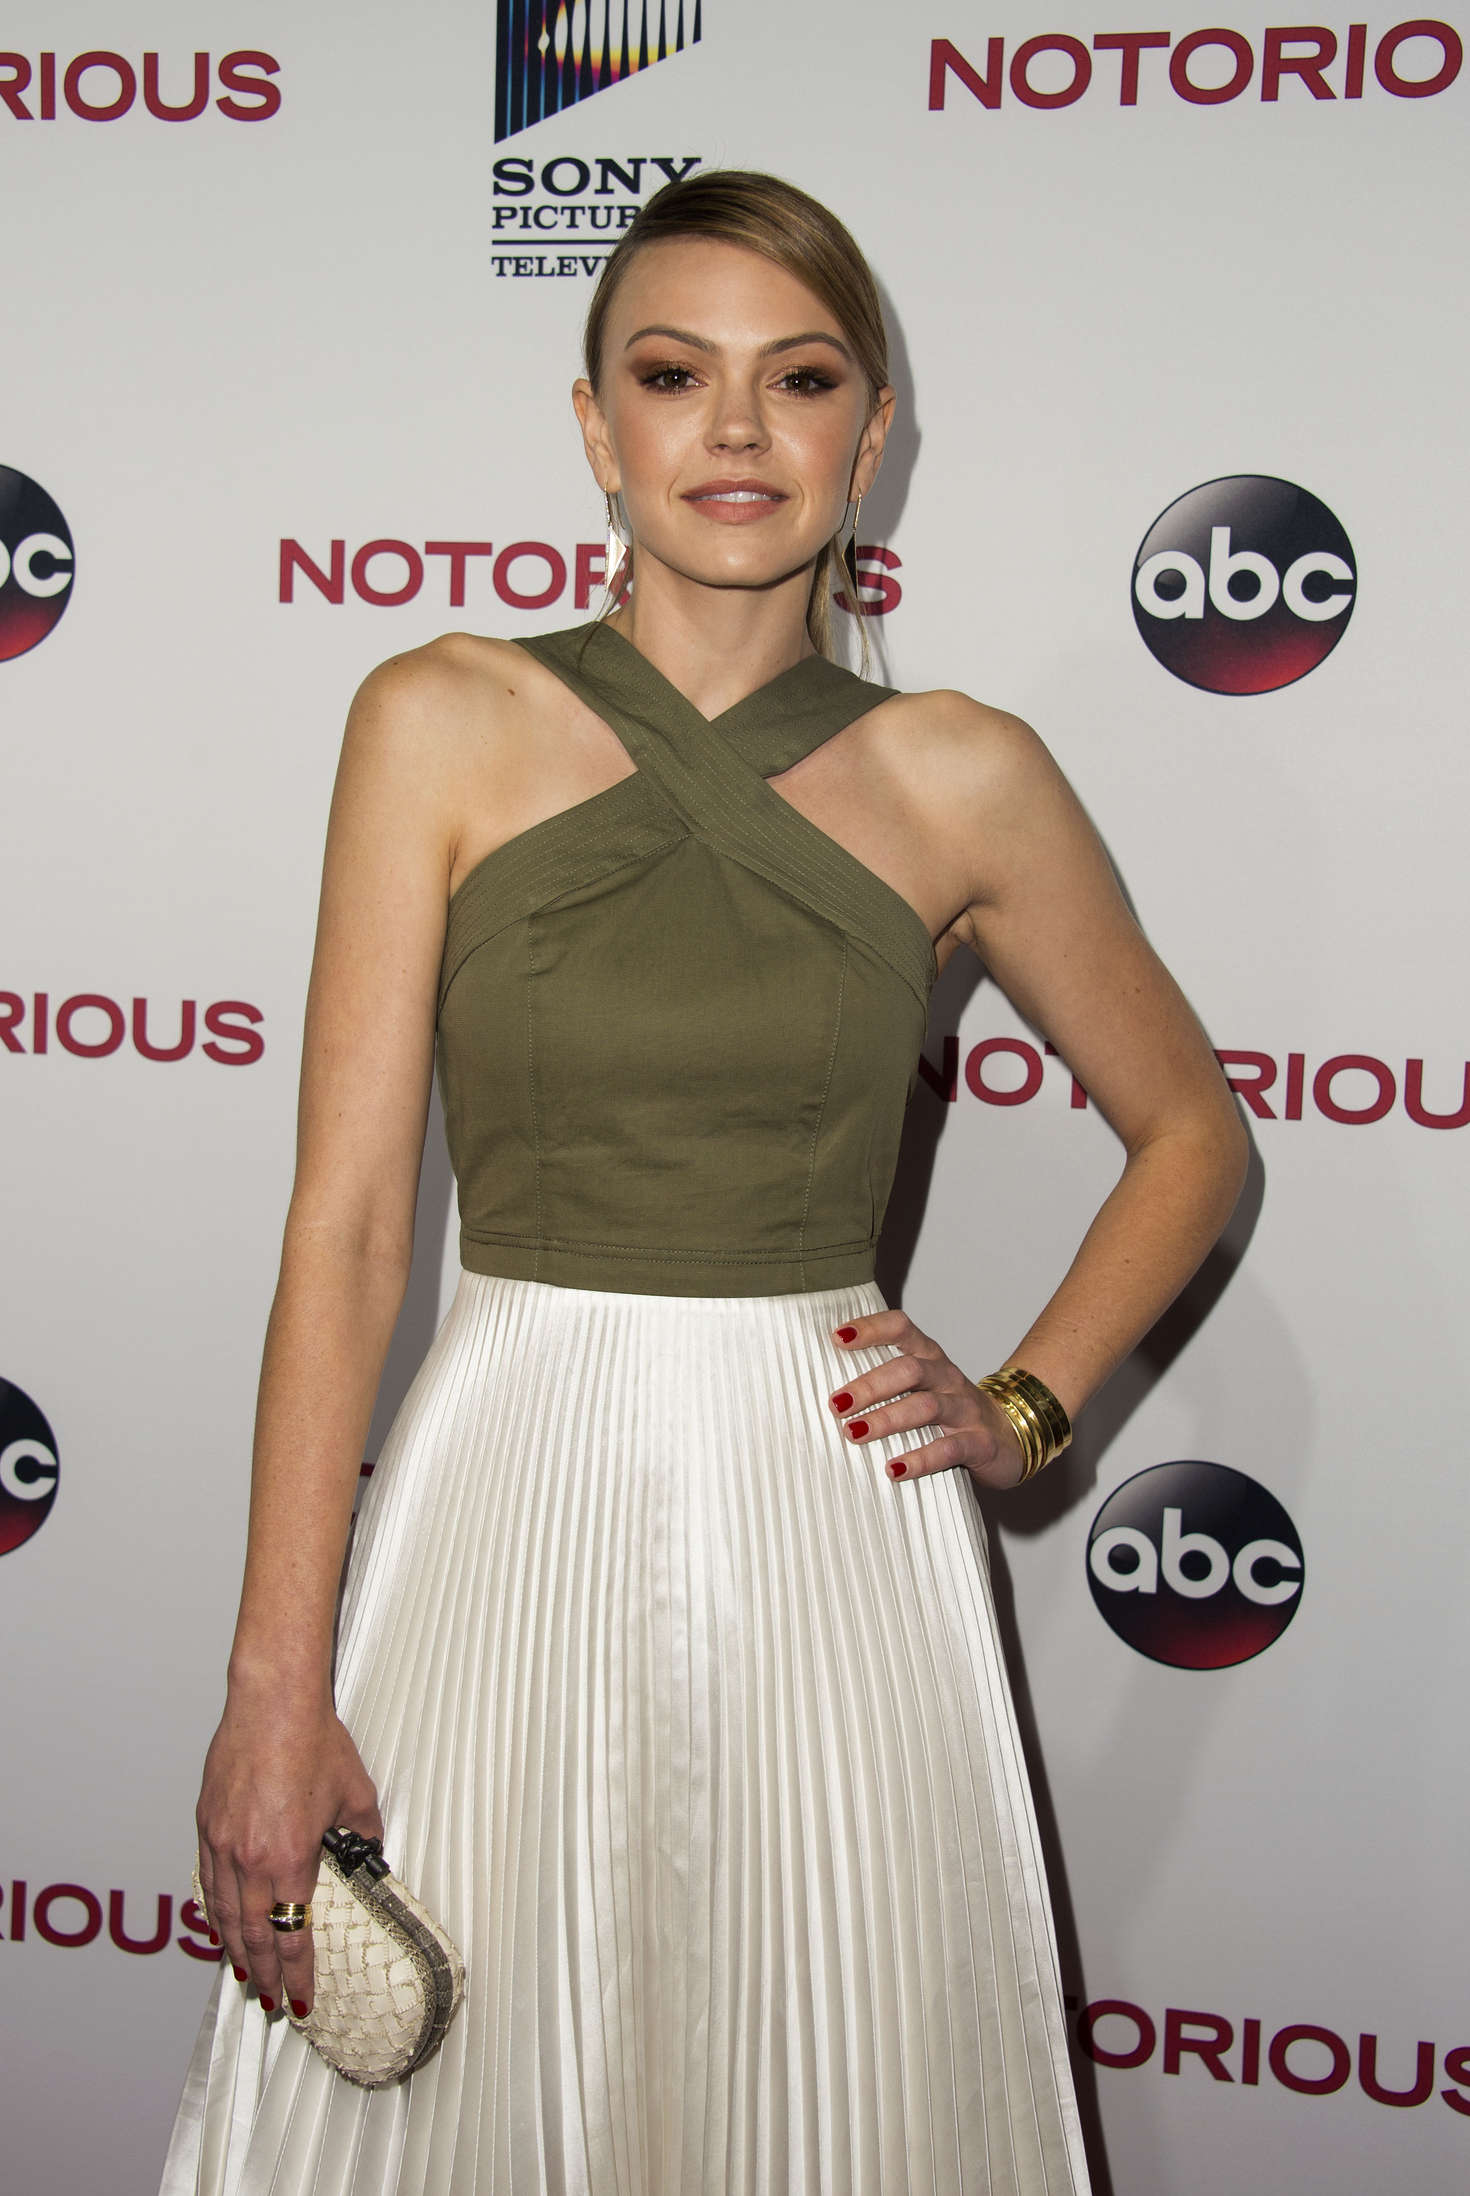 Aimee Teegarden - 'Notorious' Premiere in Los Angeles